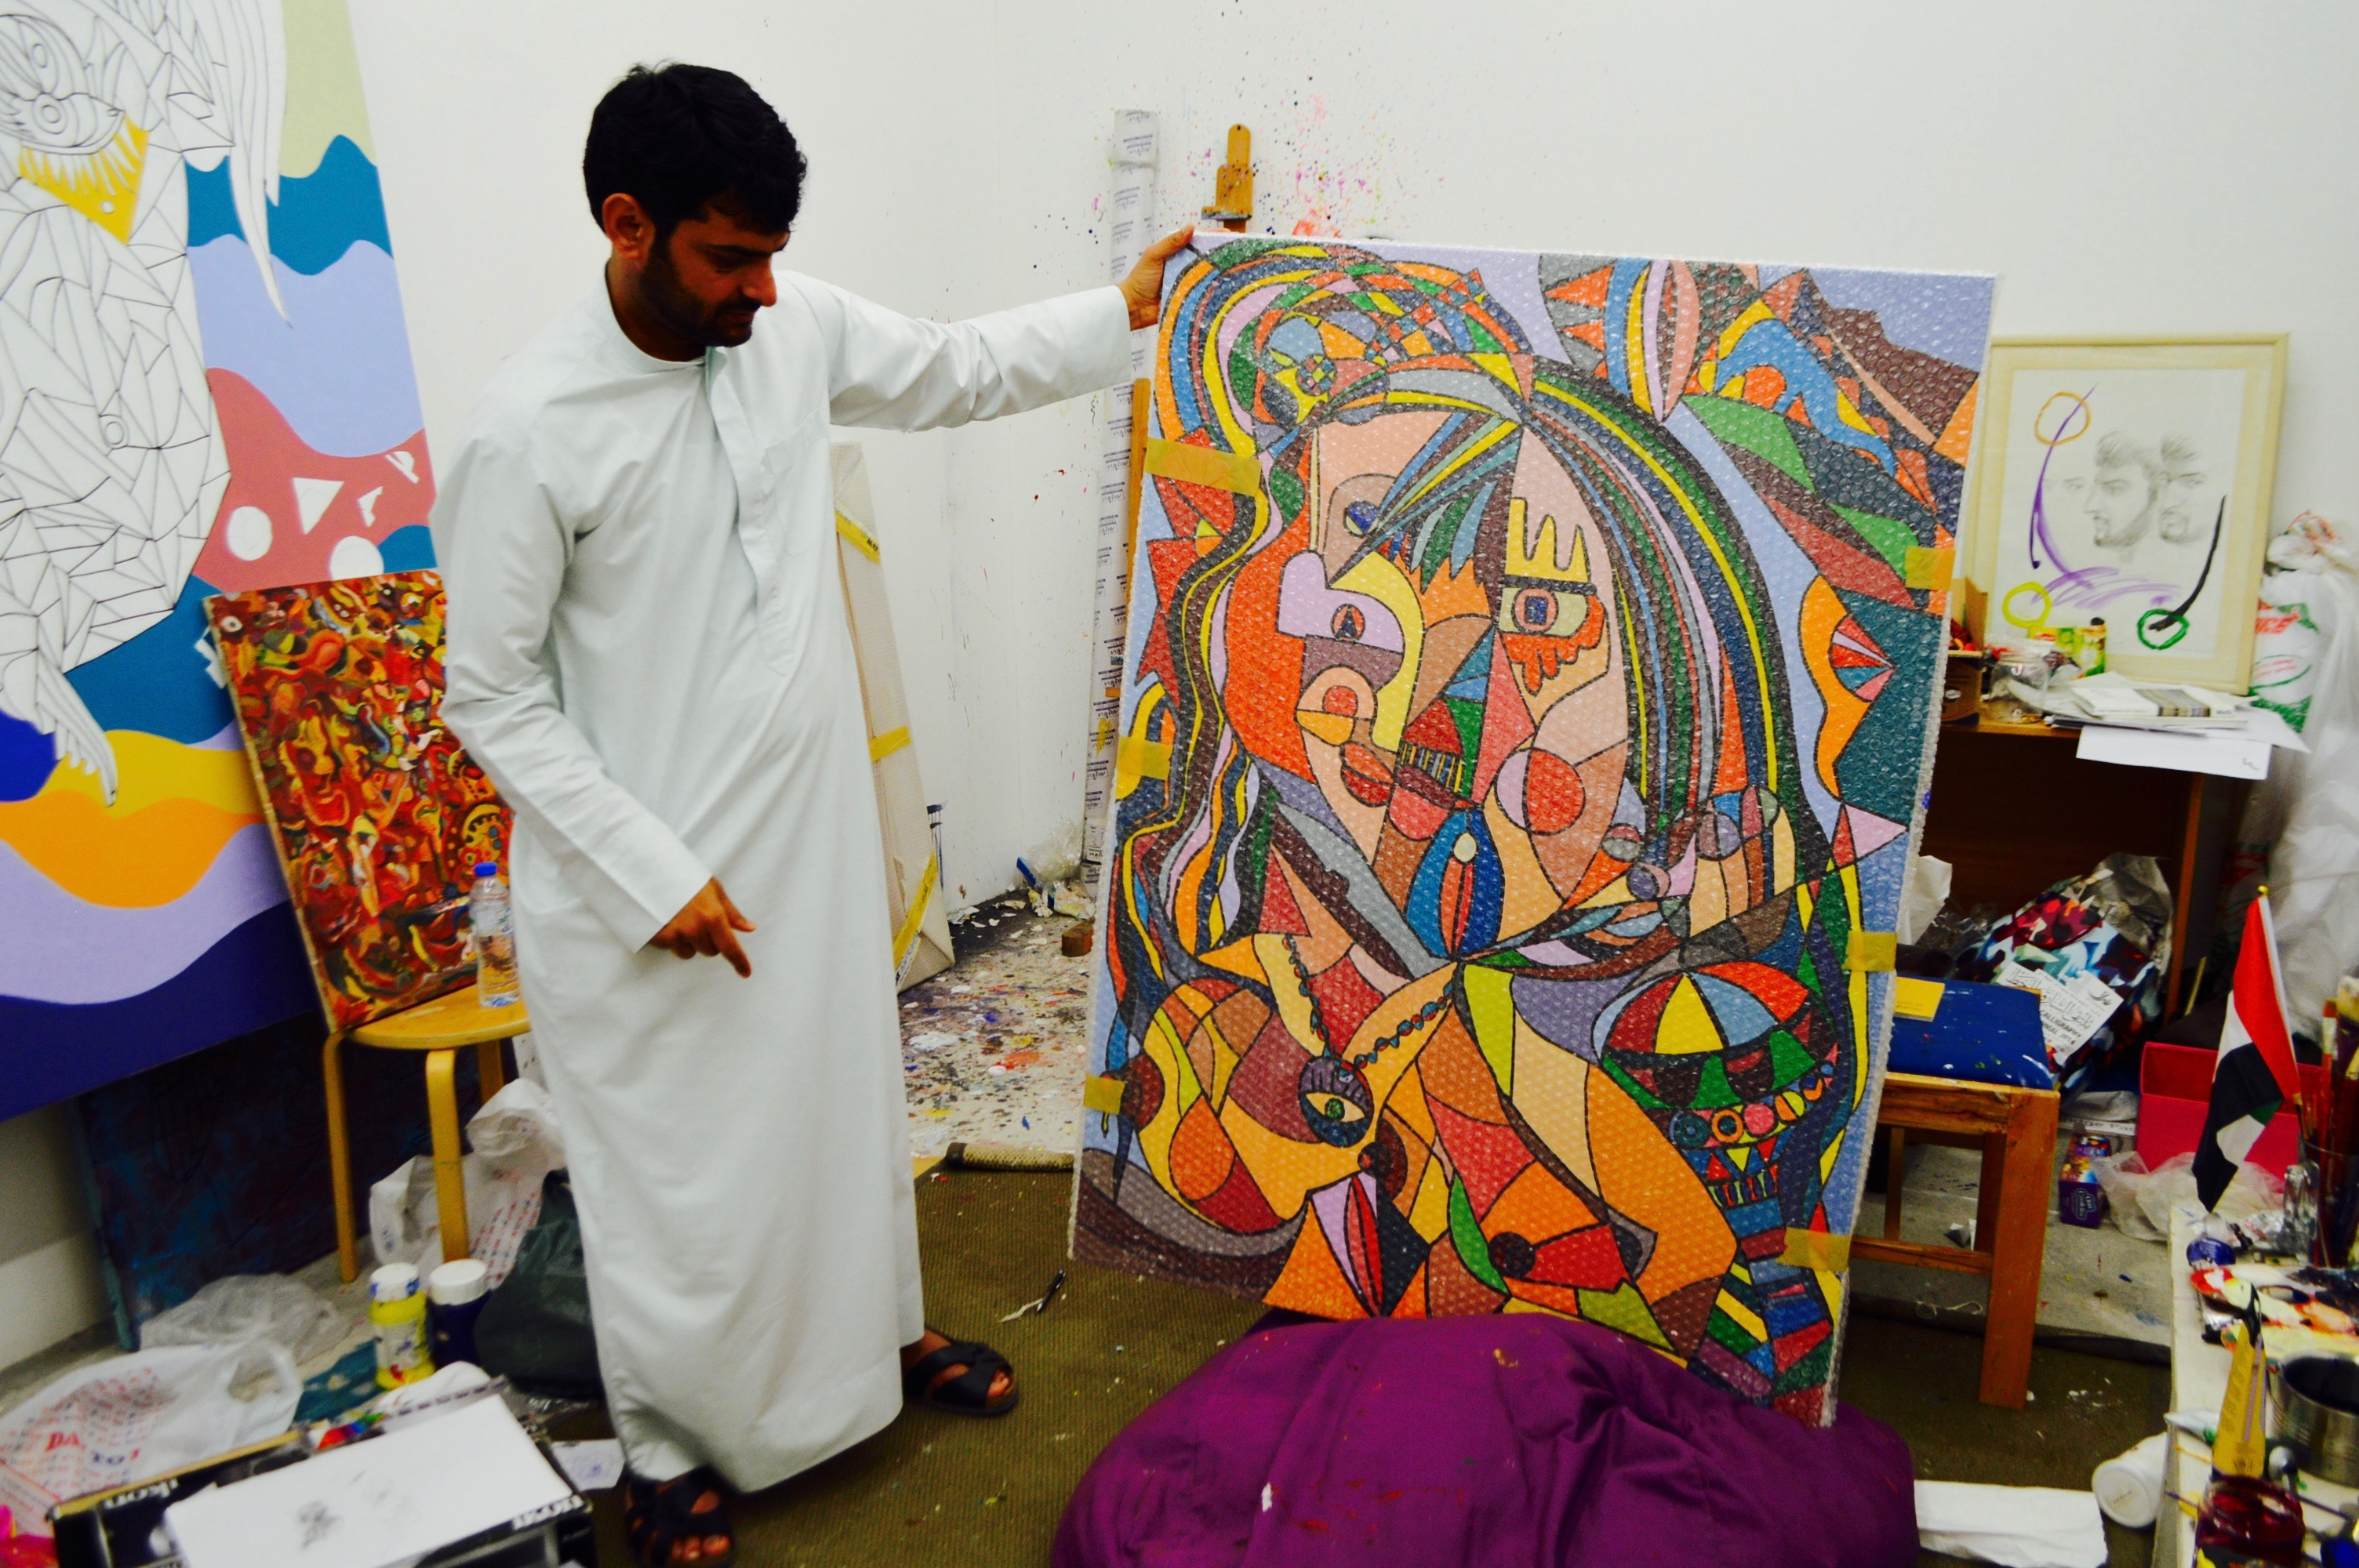 Abdul Rahman Al Maa'ini in his studio with a work in progress. Courtesy of the Barjeel Foundation.